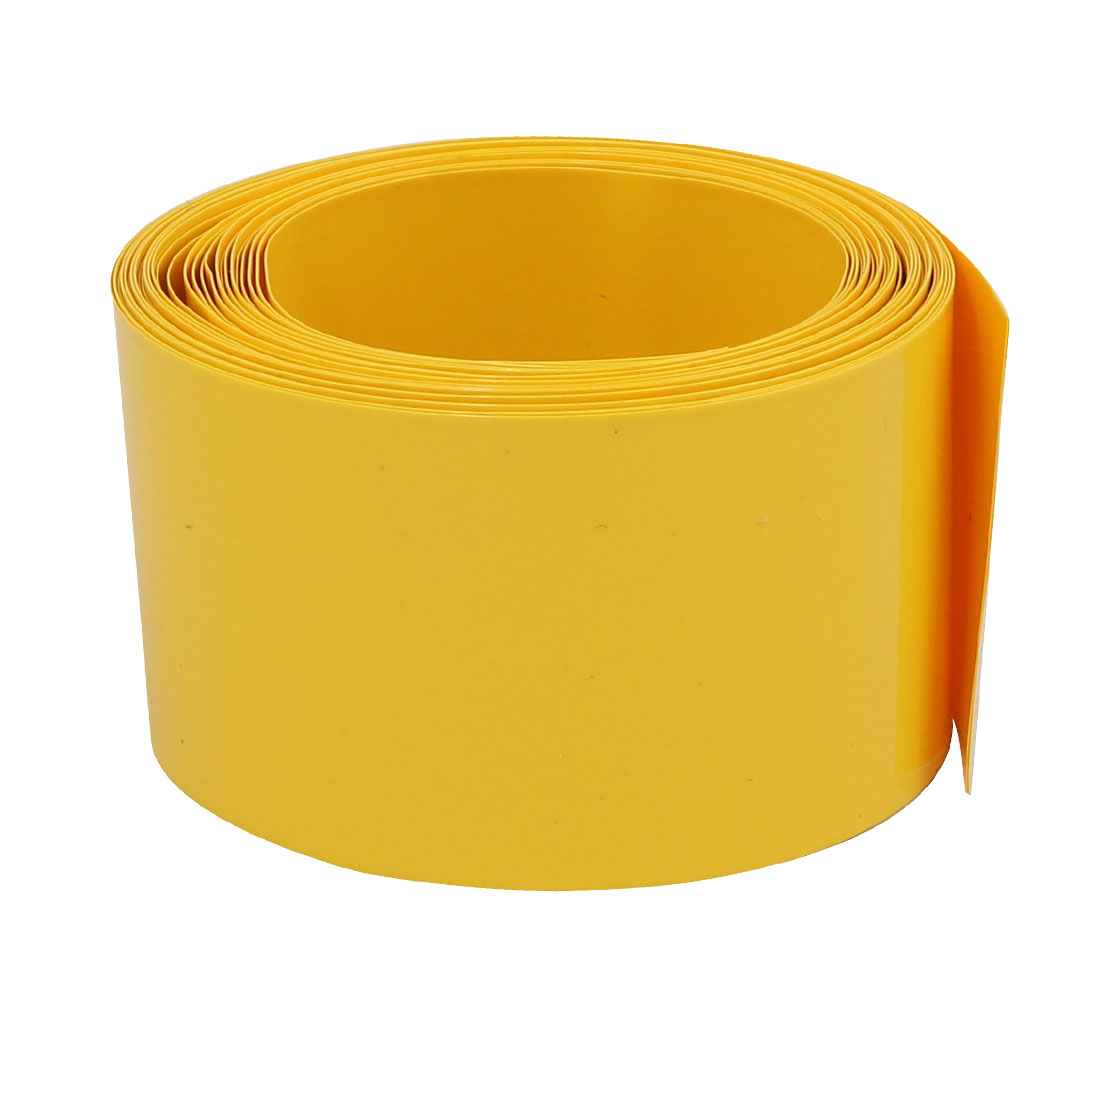 43mm Flat Width 5M Long PVC Heat Shrinkable Tube Yellow for 26650 Battery Pack